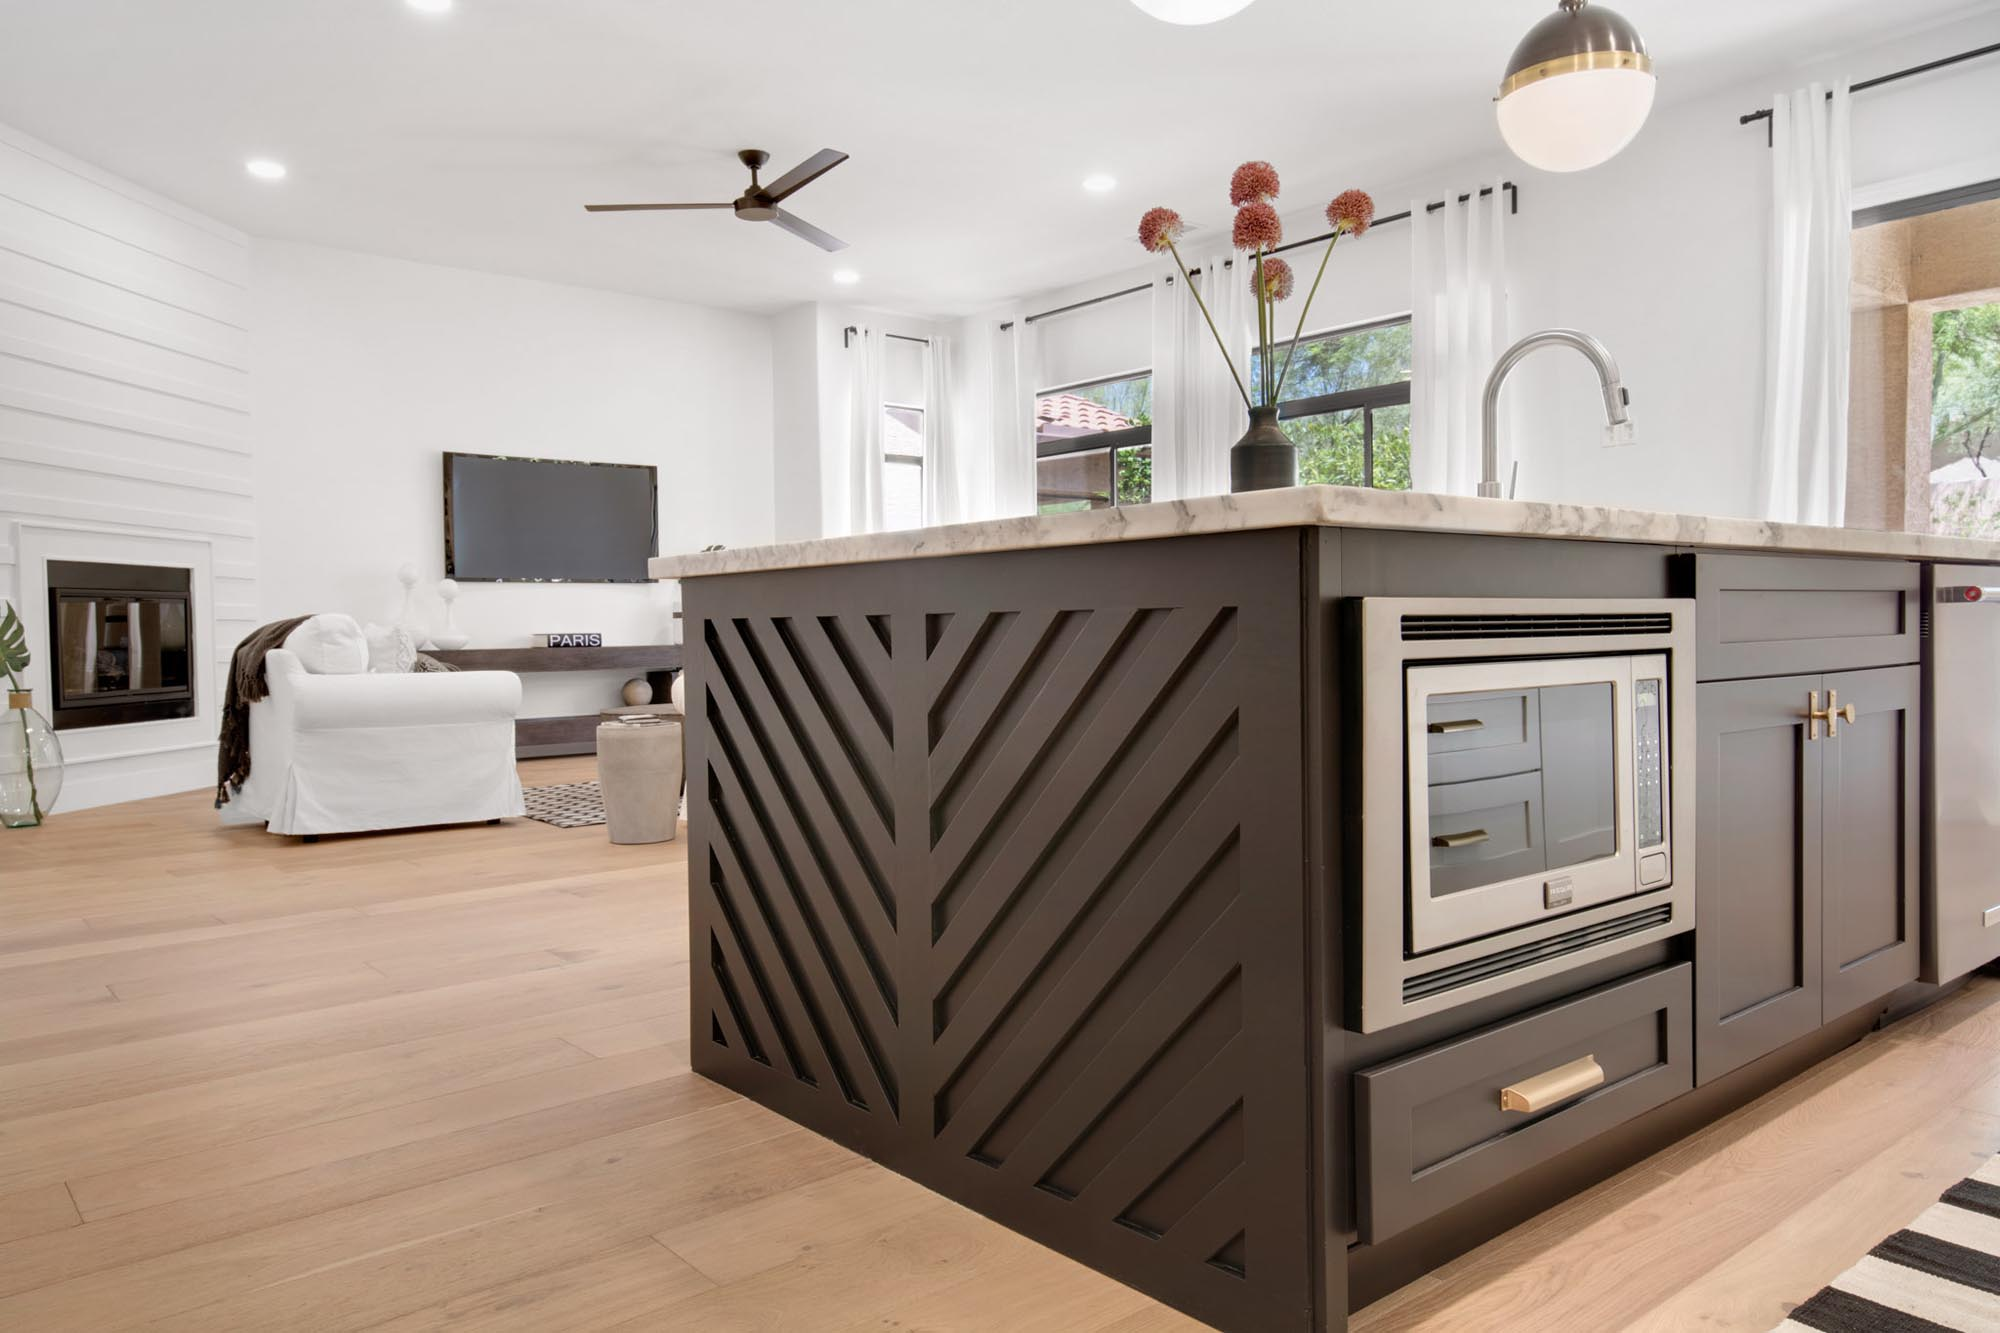 Kitchen island with cabinet and appliances